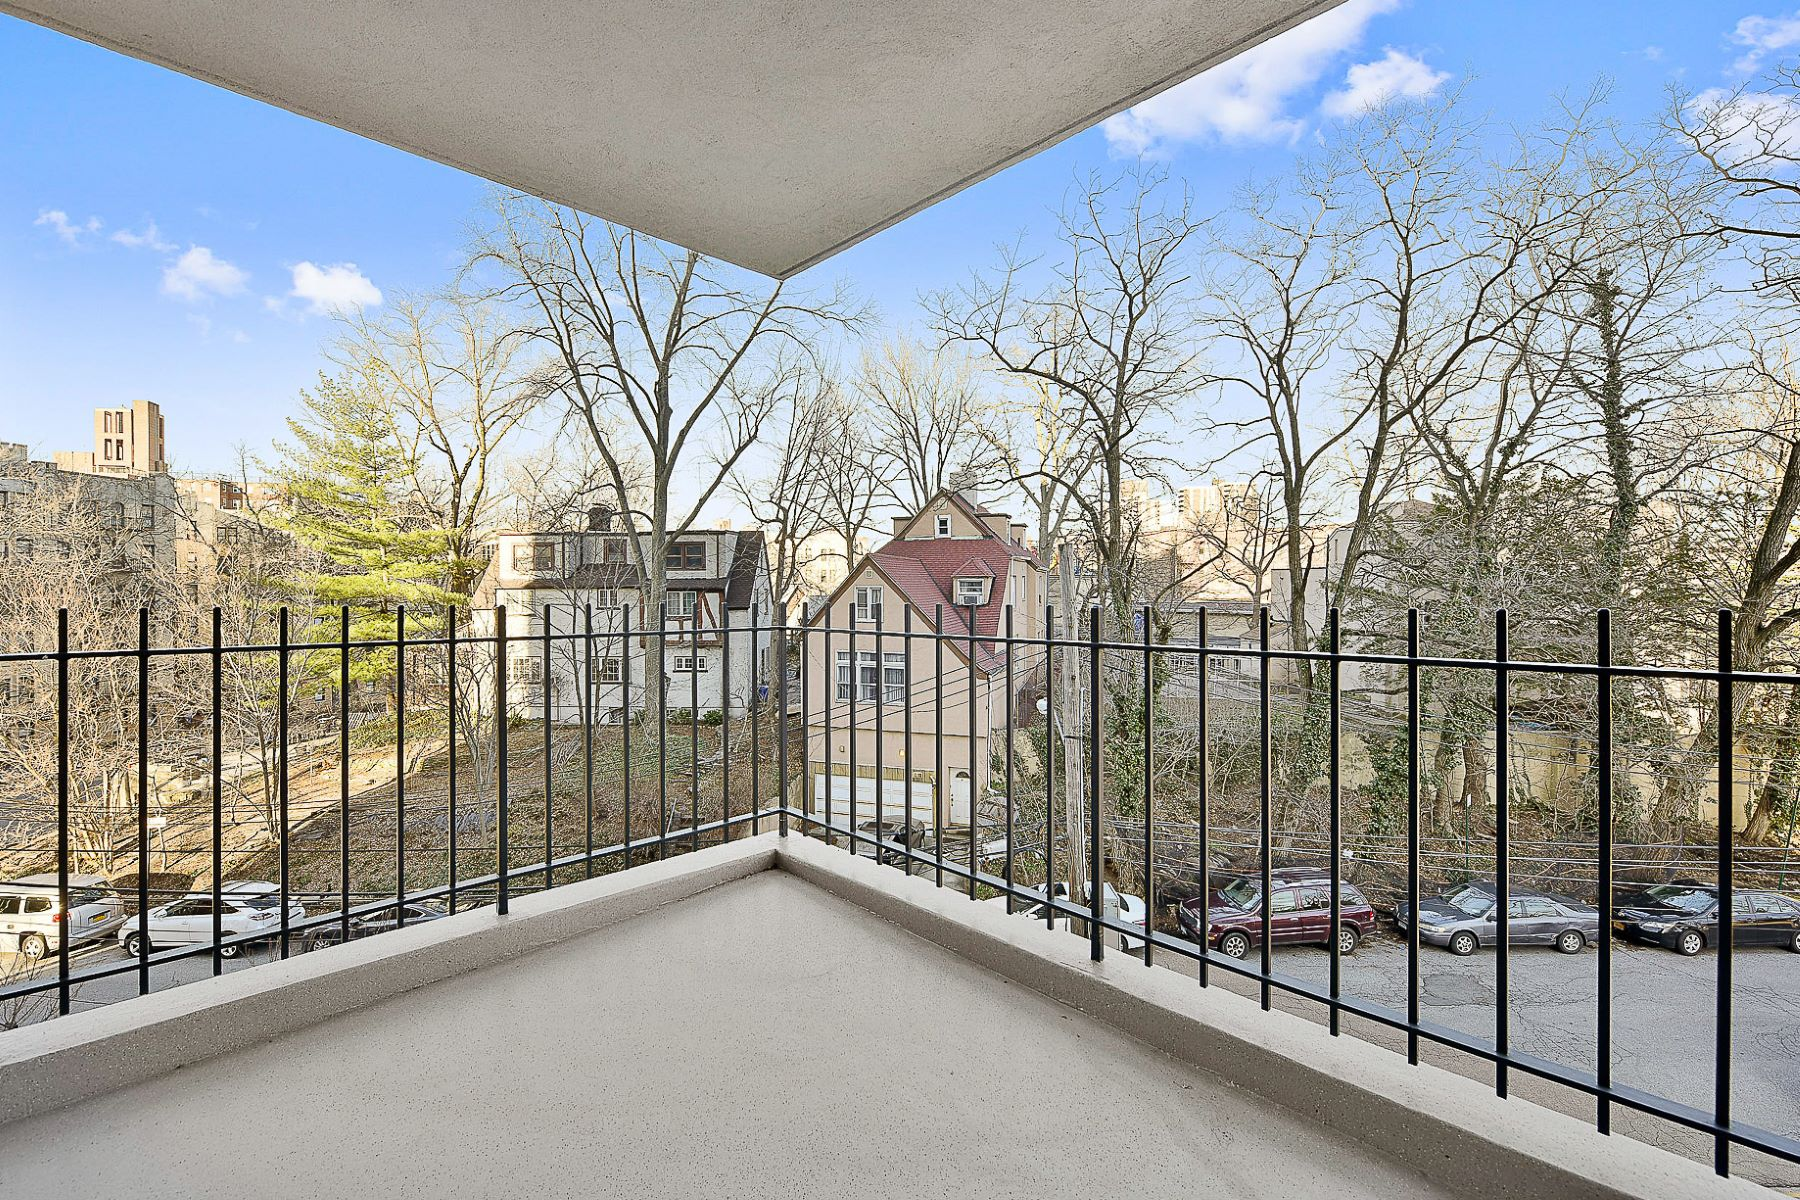 Co-op for Sale at Sun-filled with Open Views and a Terrace Large 2 BR Co-op 3850 Sedgwick Avenue 4F Kingsbridge, Bronx, New York, 10463 United States